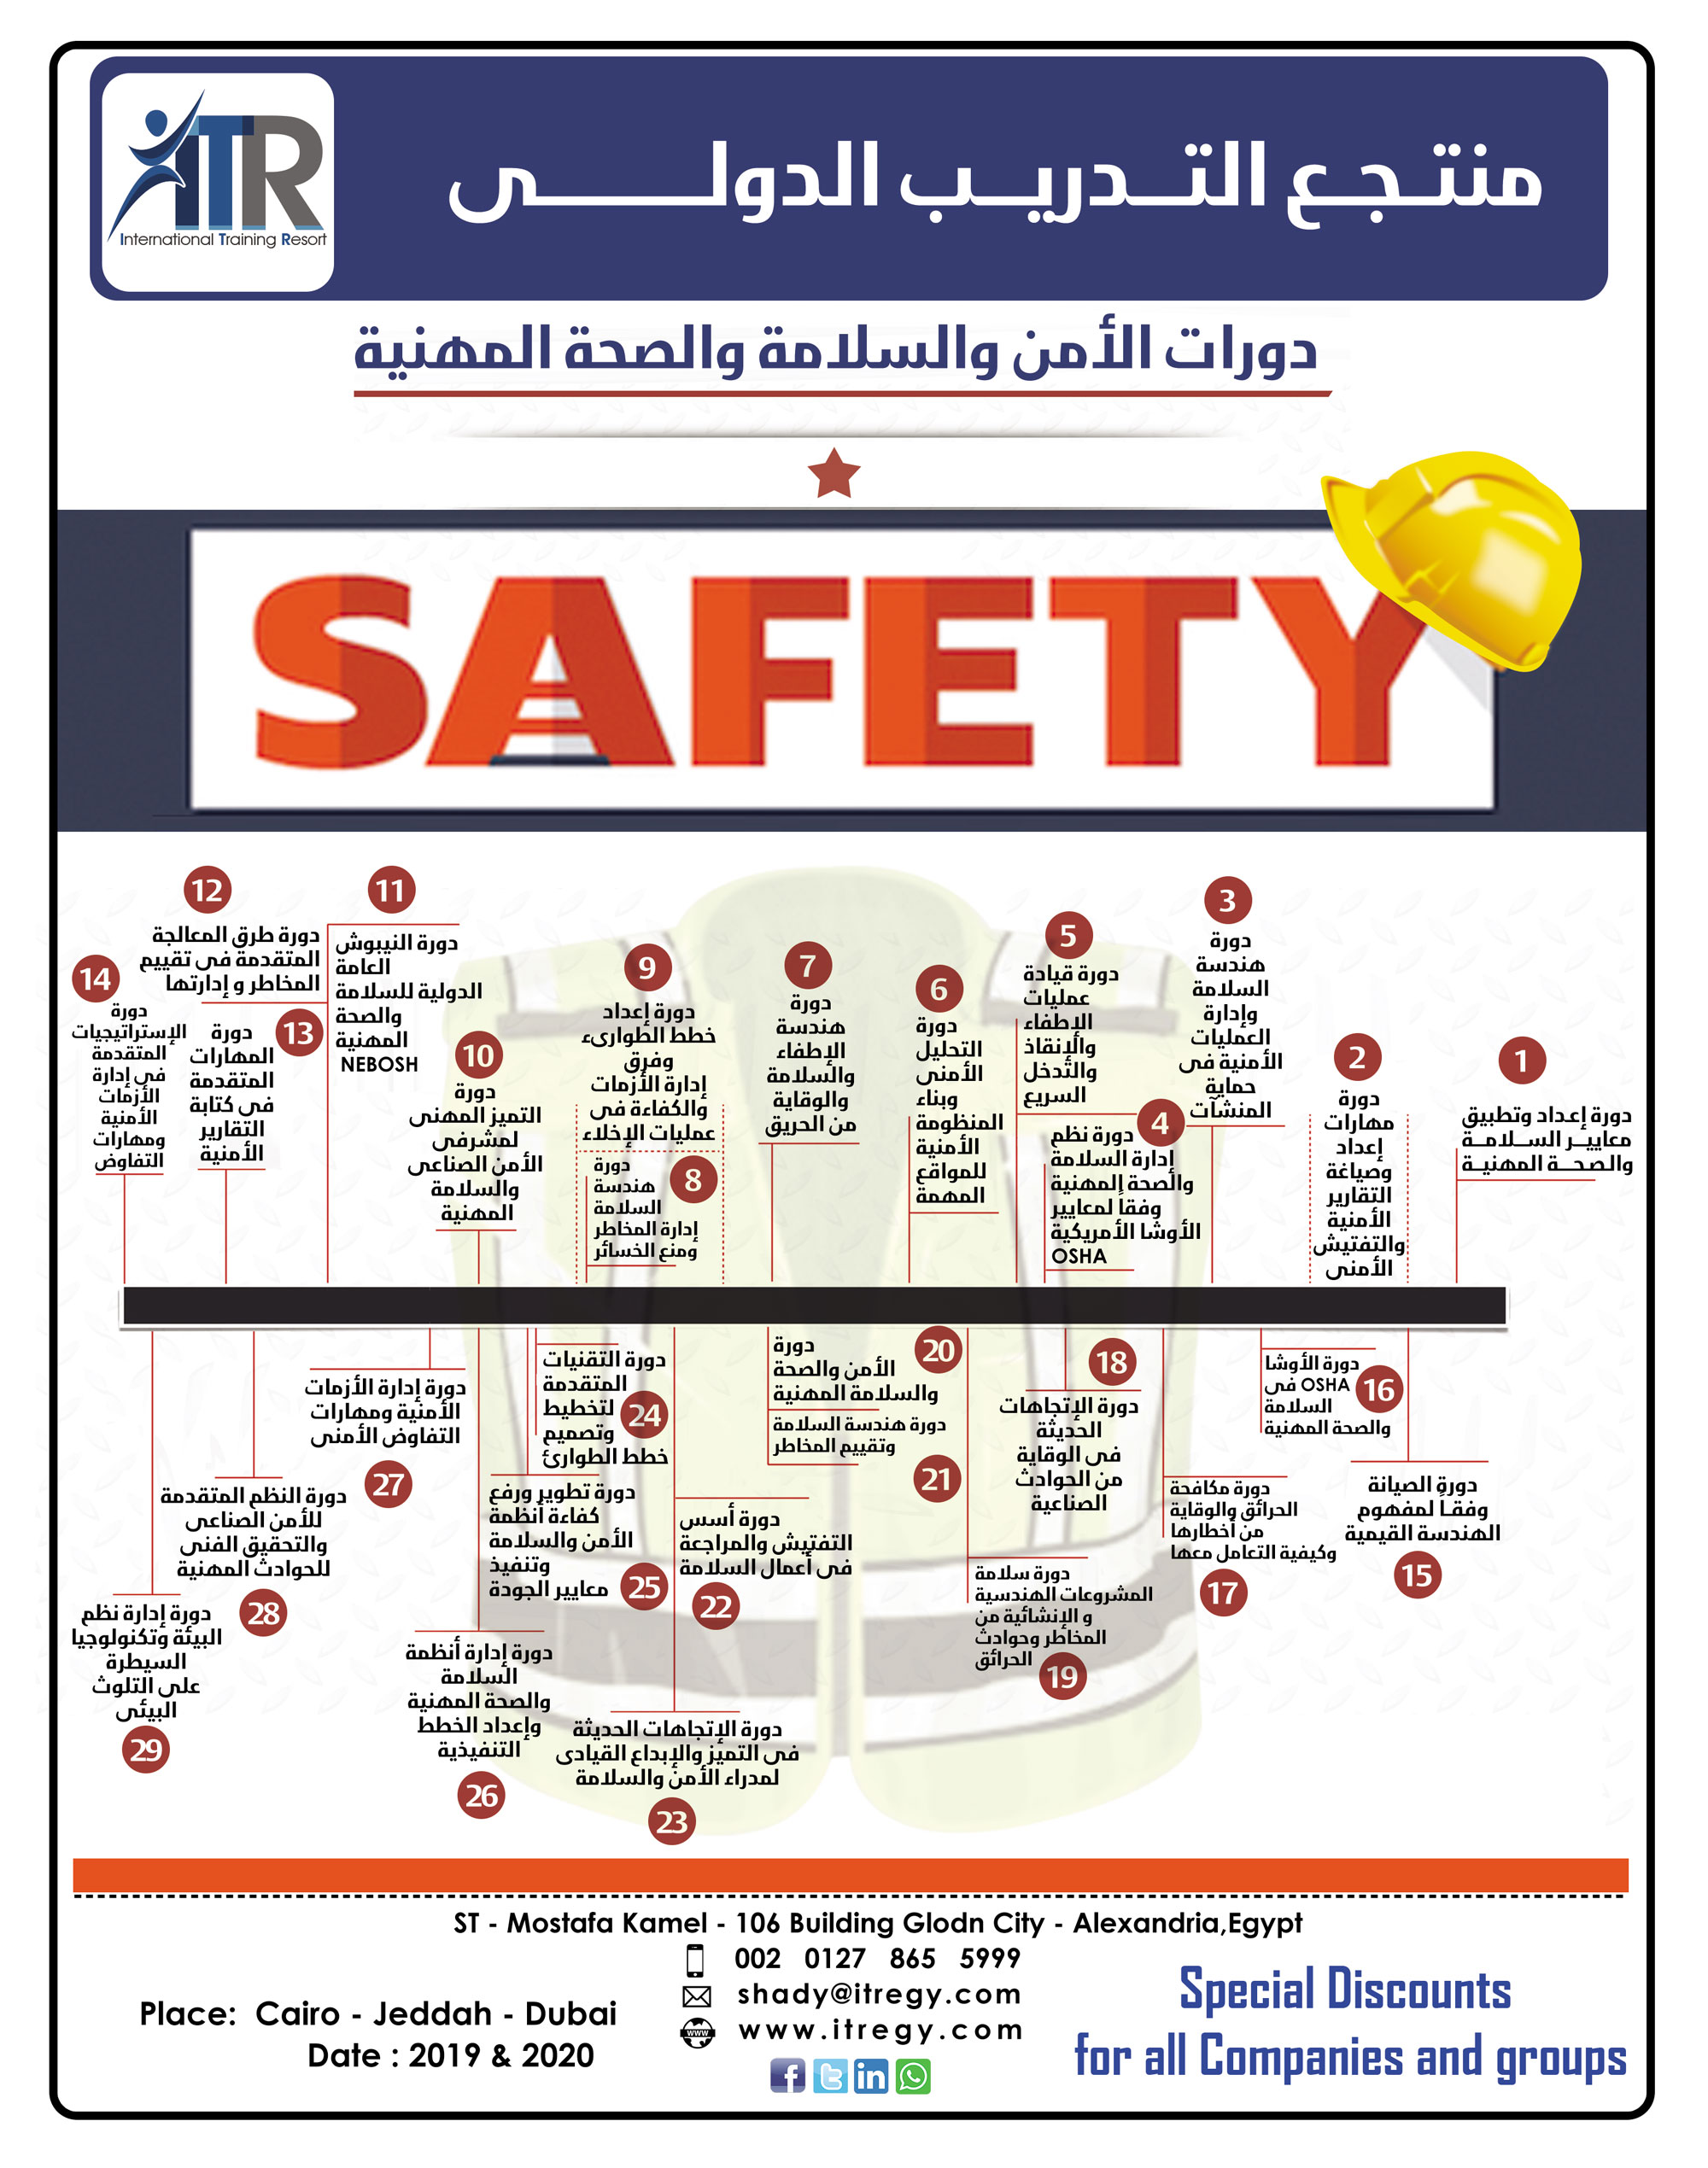 Security, Safety and Occupational Health